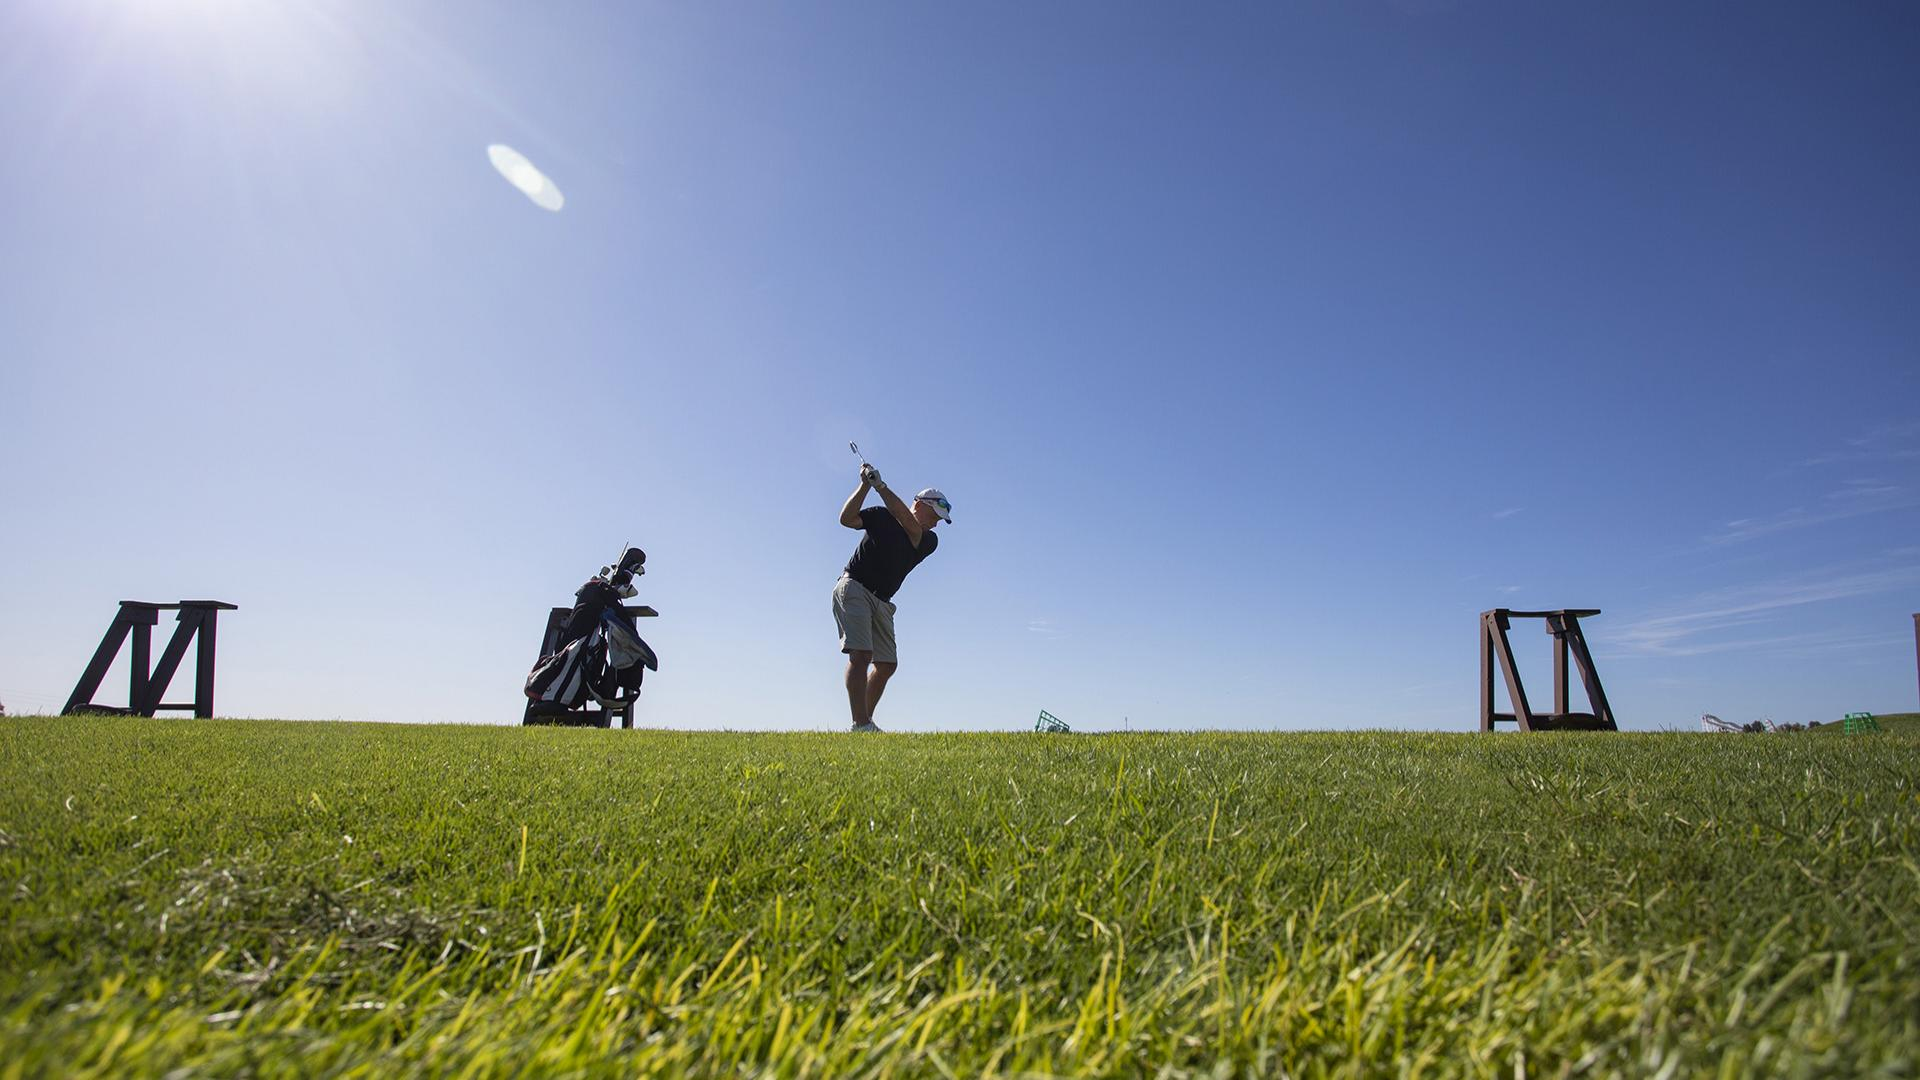 Practice your golf at our Golf Academy!